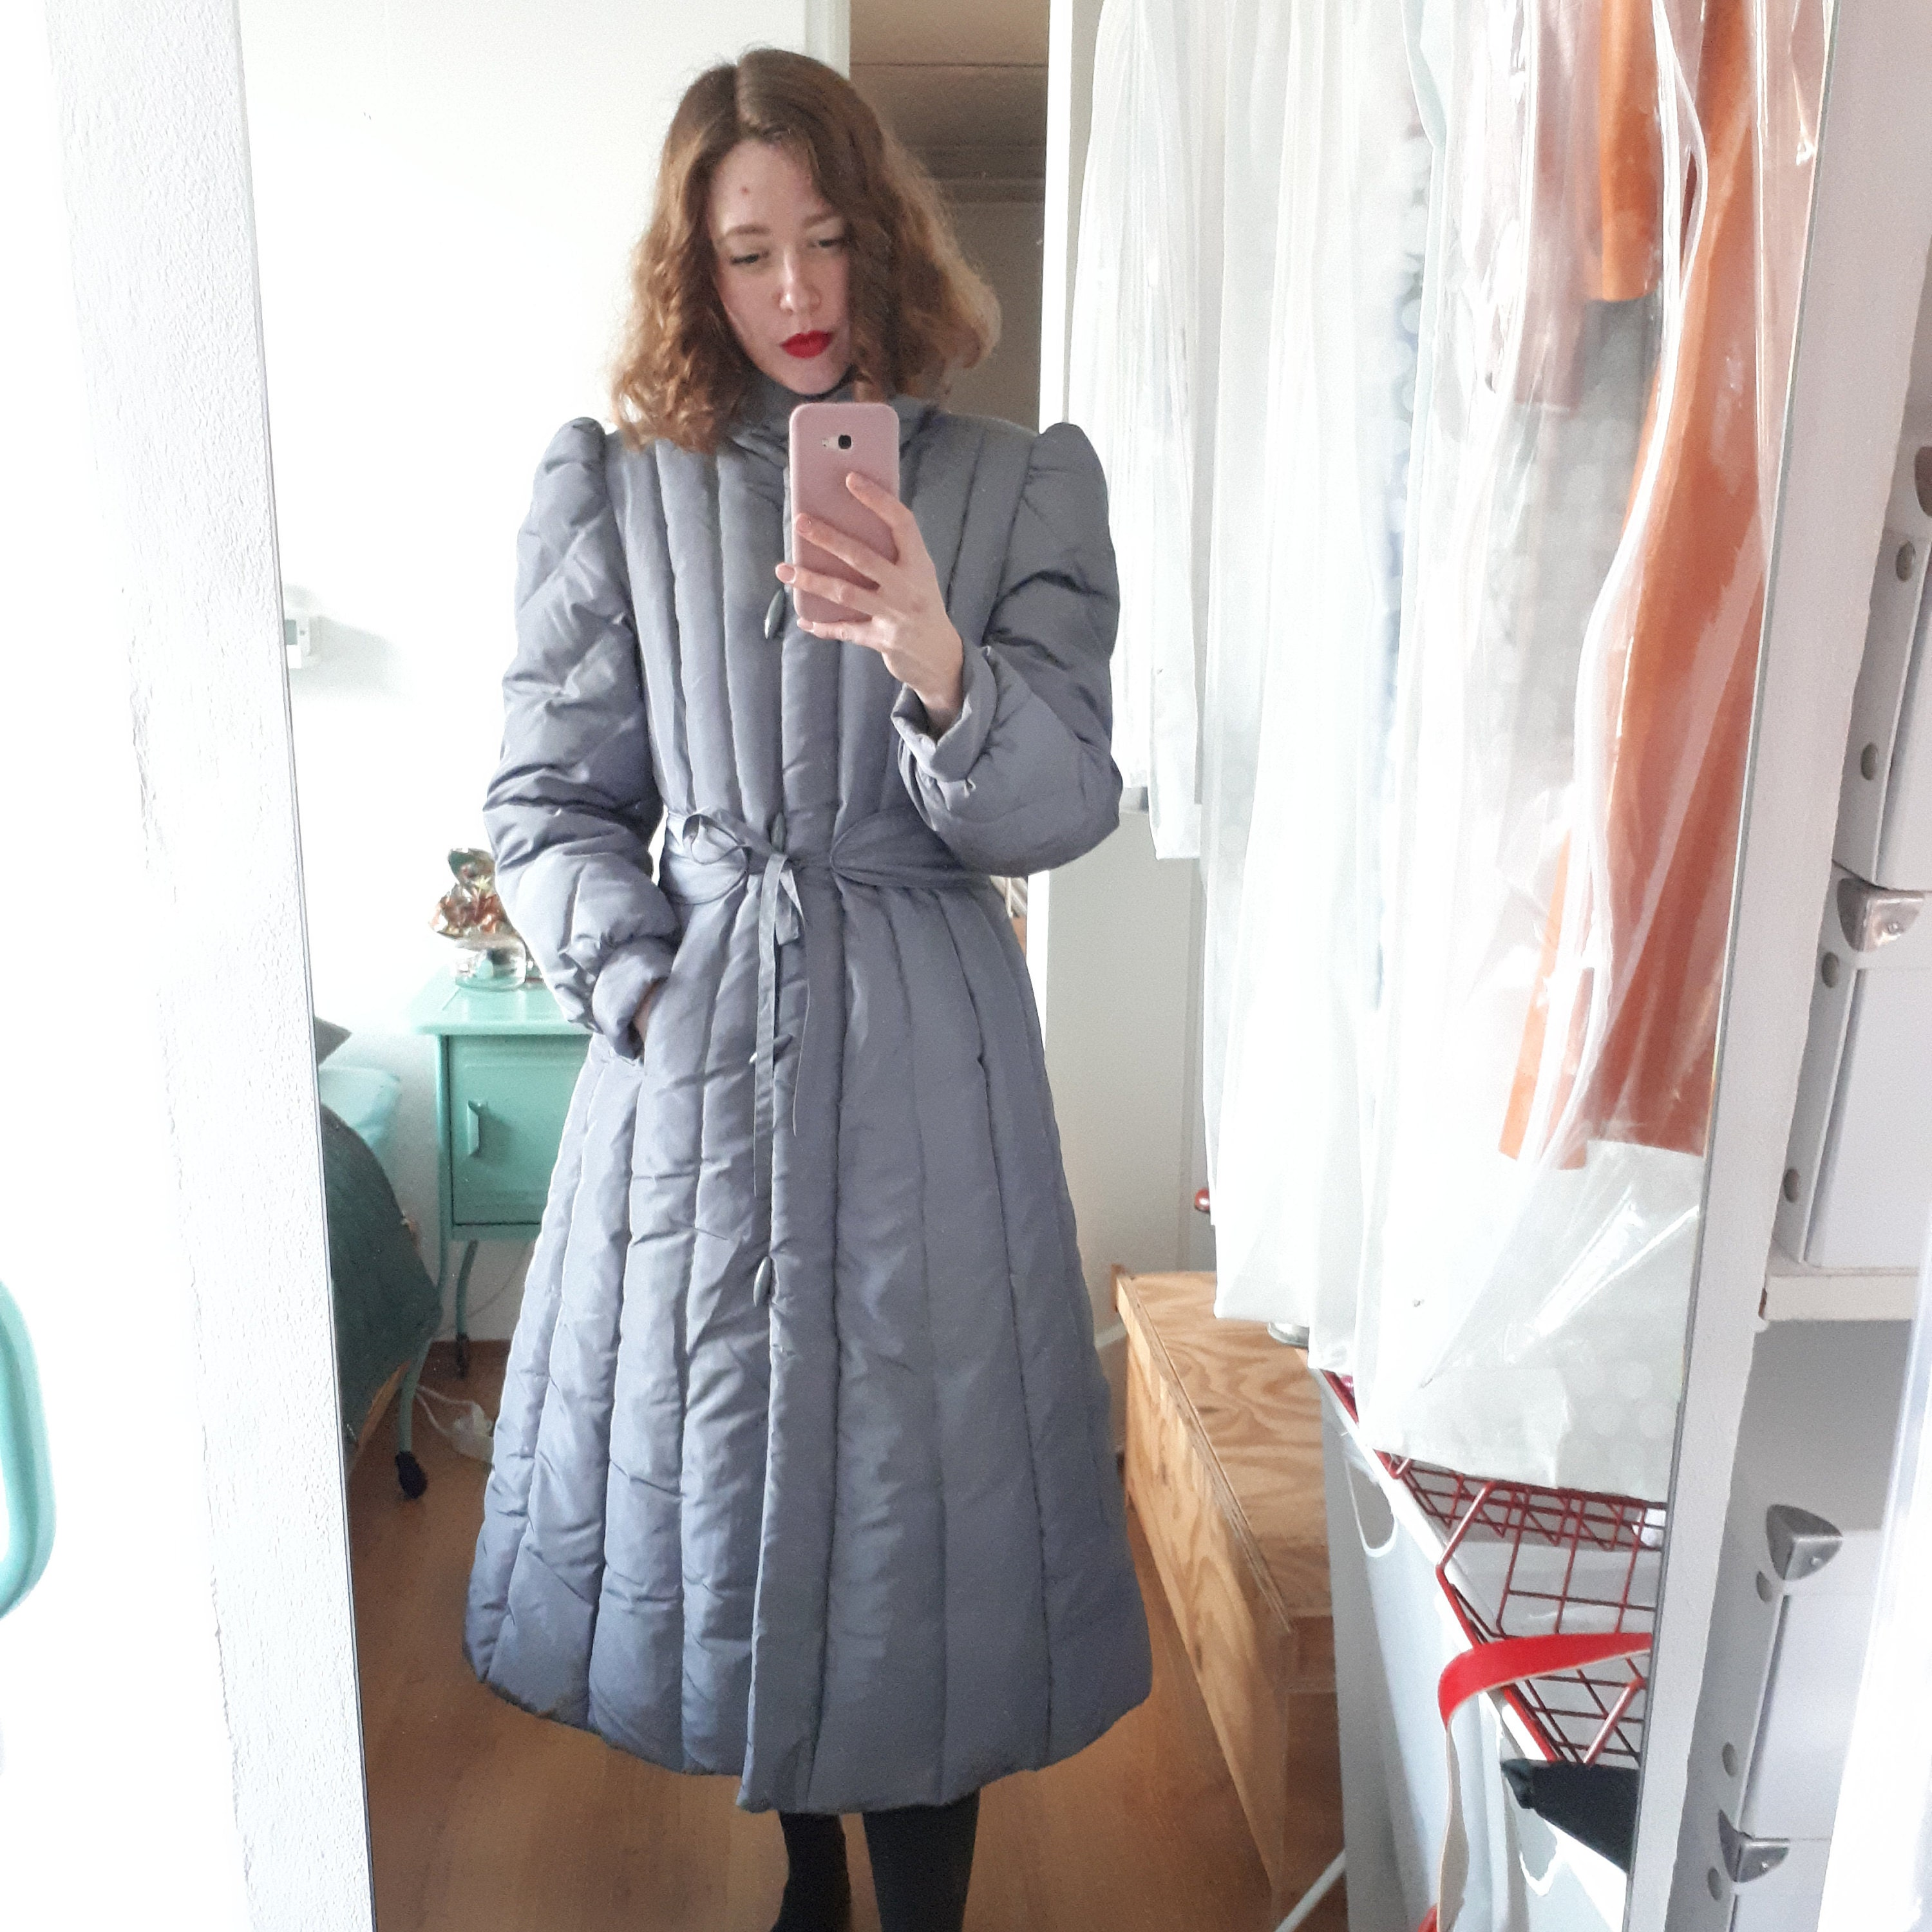 Manon van Trier added a photo of their purchase